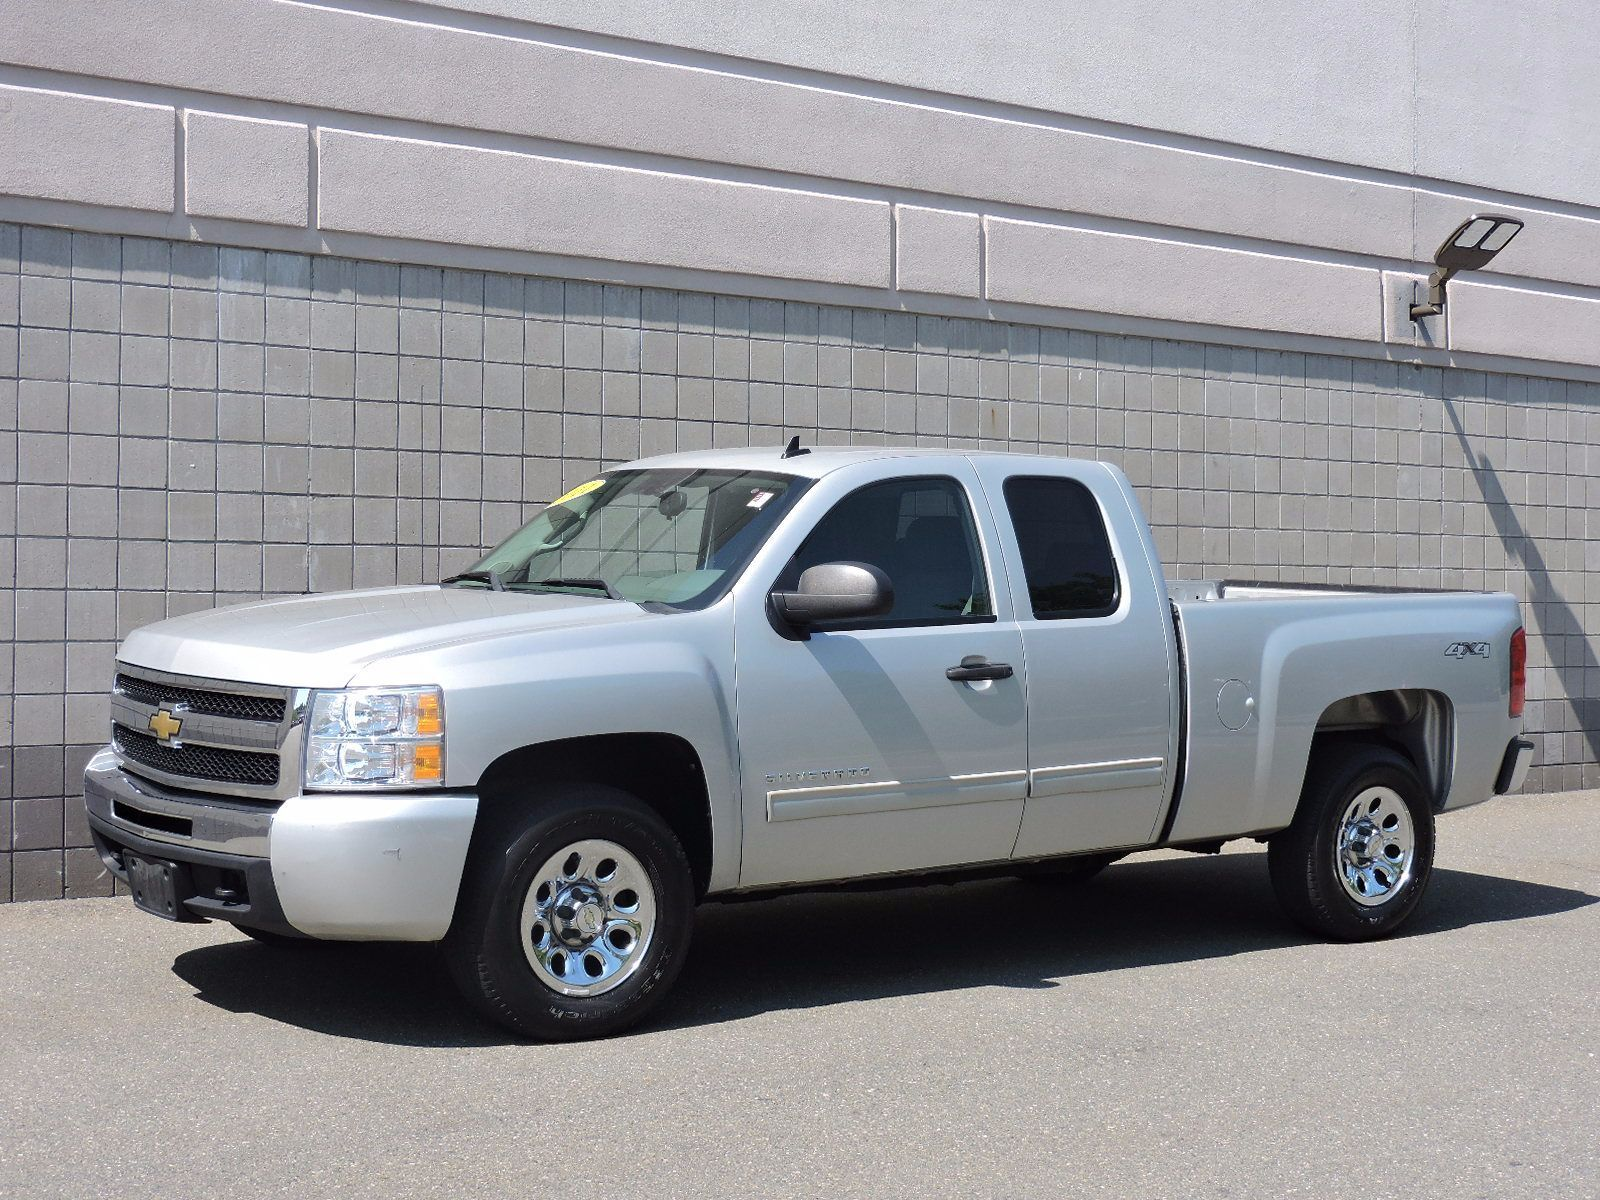 used 2011 chevrolet silverado 1500 ls at auto house usa saugus. Black Bedroom Furniture Sets. Home Design Ideas